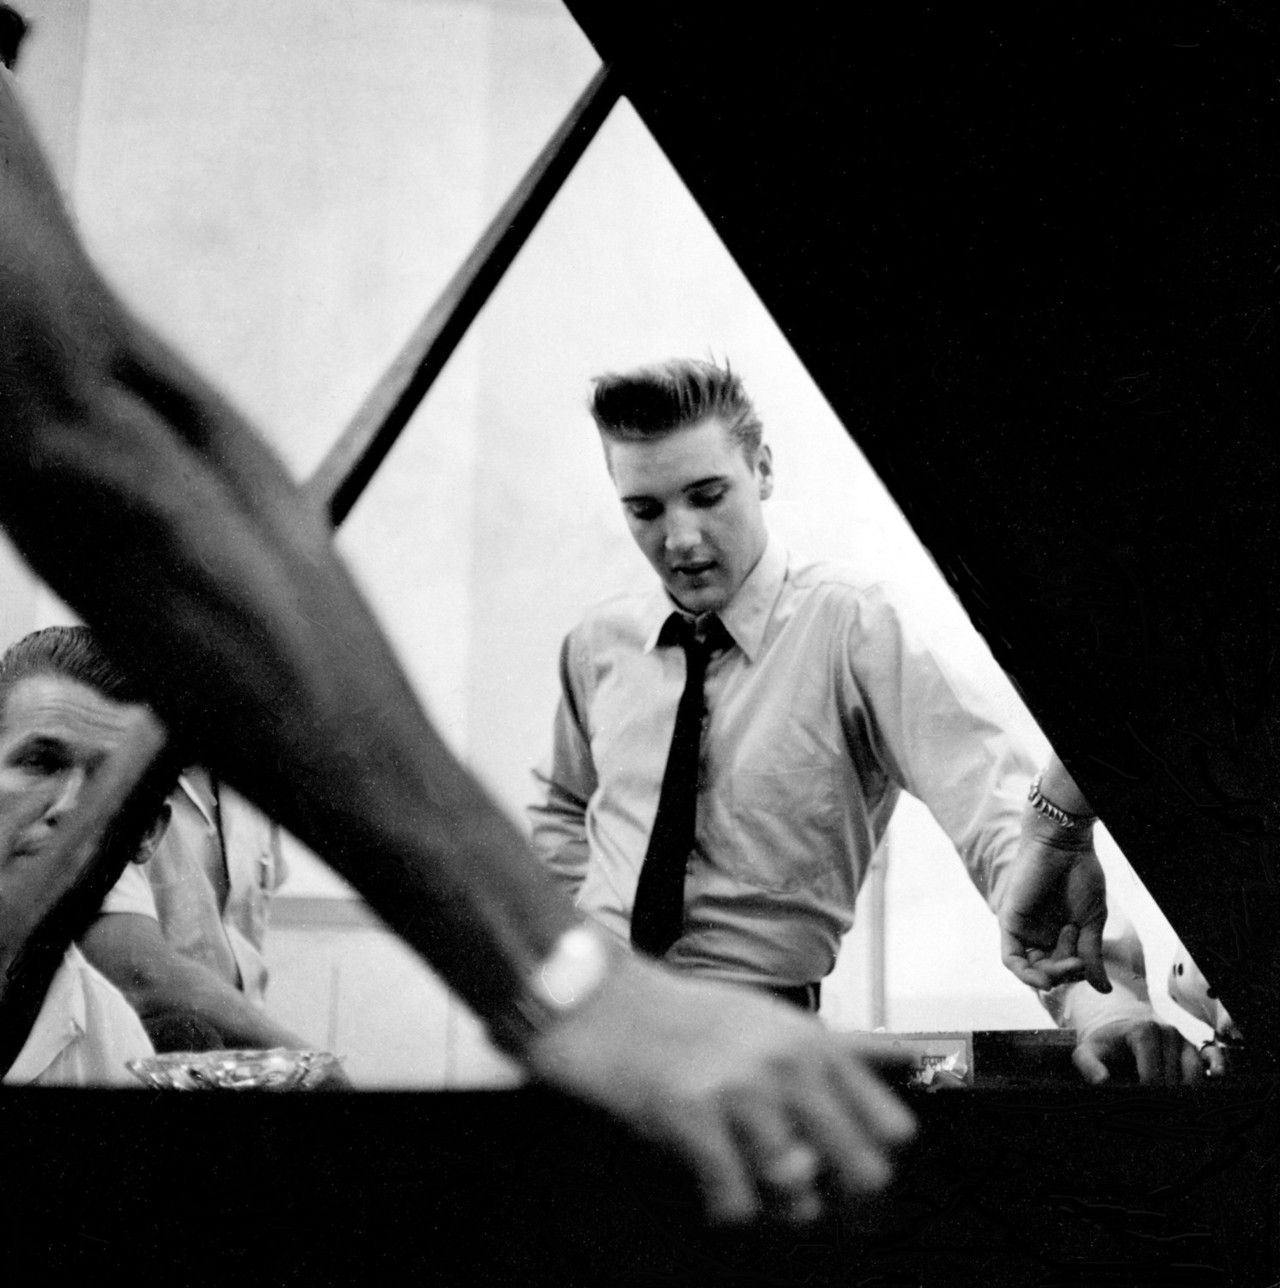 Unknown photographer, 1958, Elvis Presley at the RCA